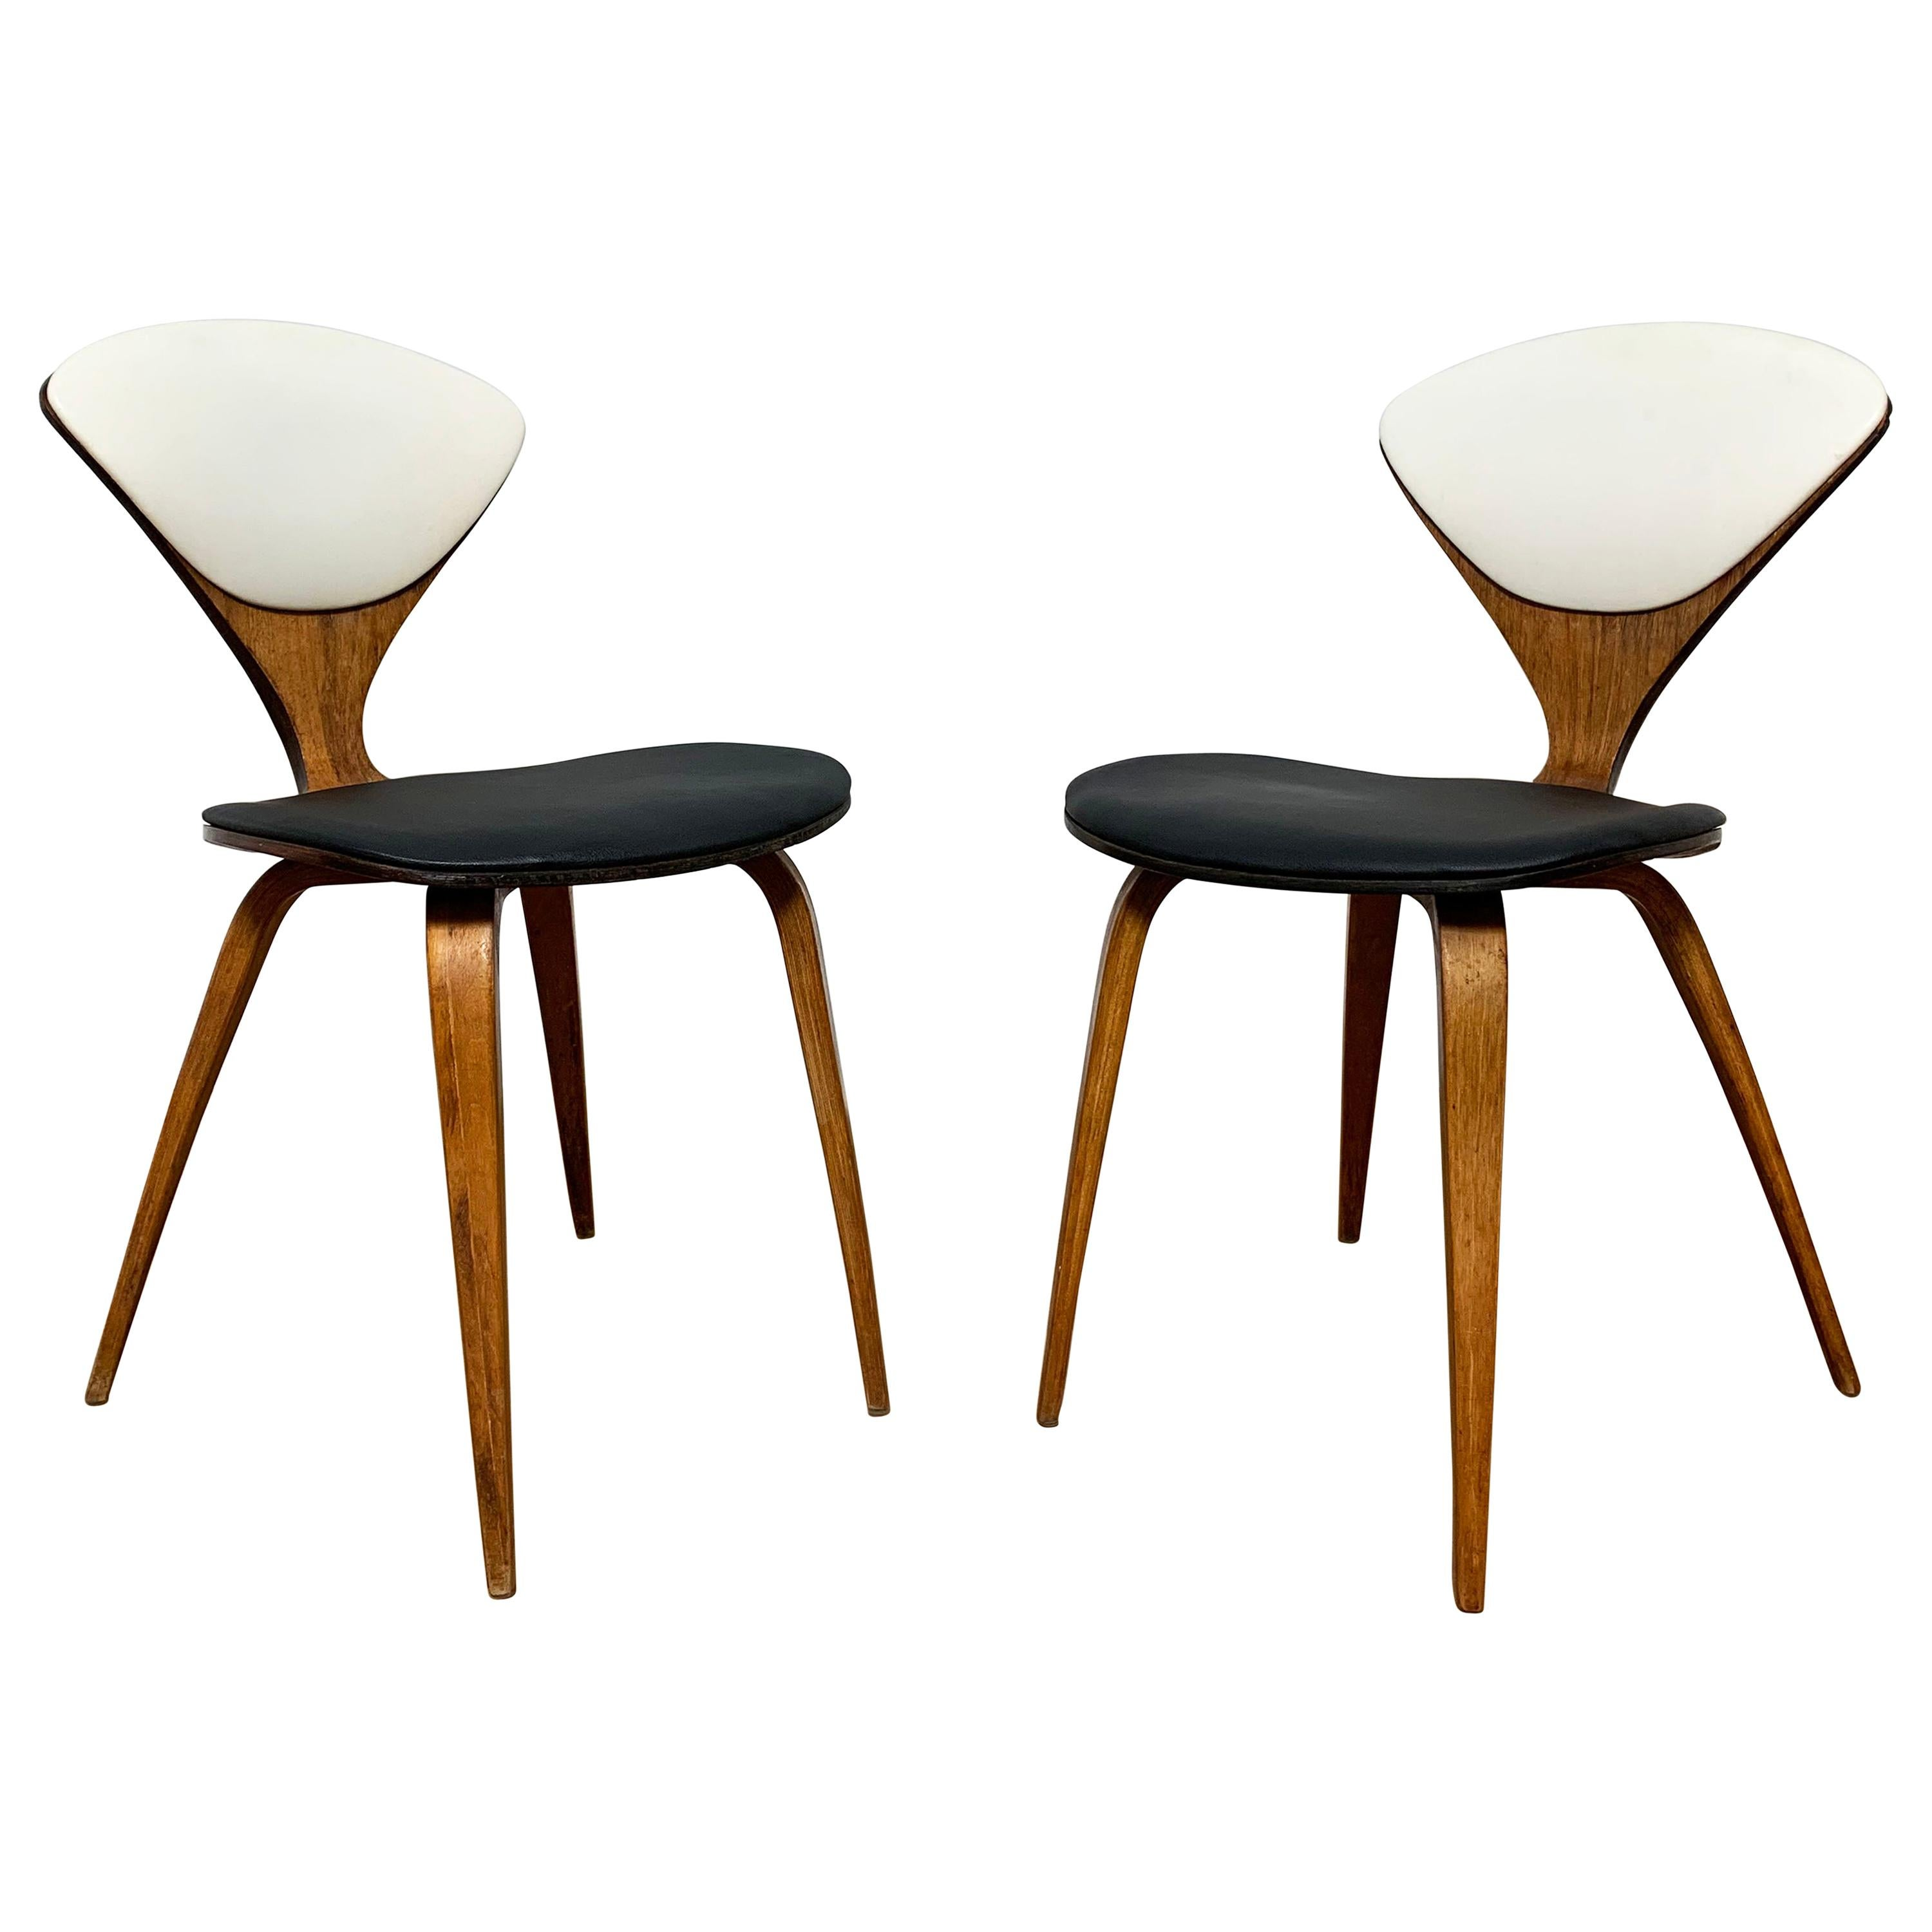 Pair of Norman Cherner Dining Chairs for Plycraft, Circa 1960s